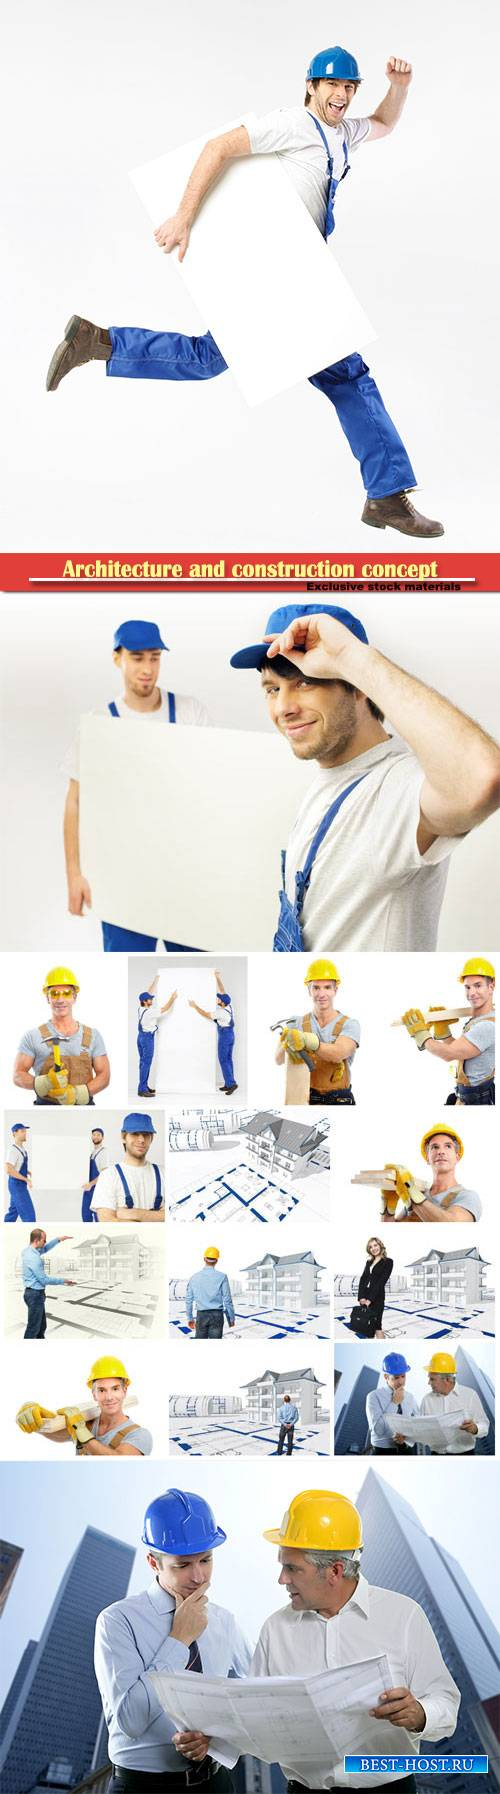 Architecture and construction concept